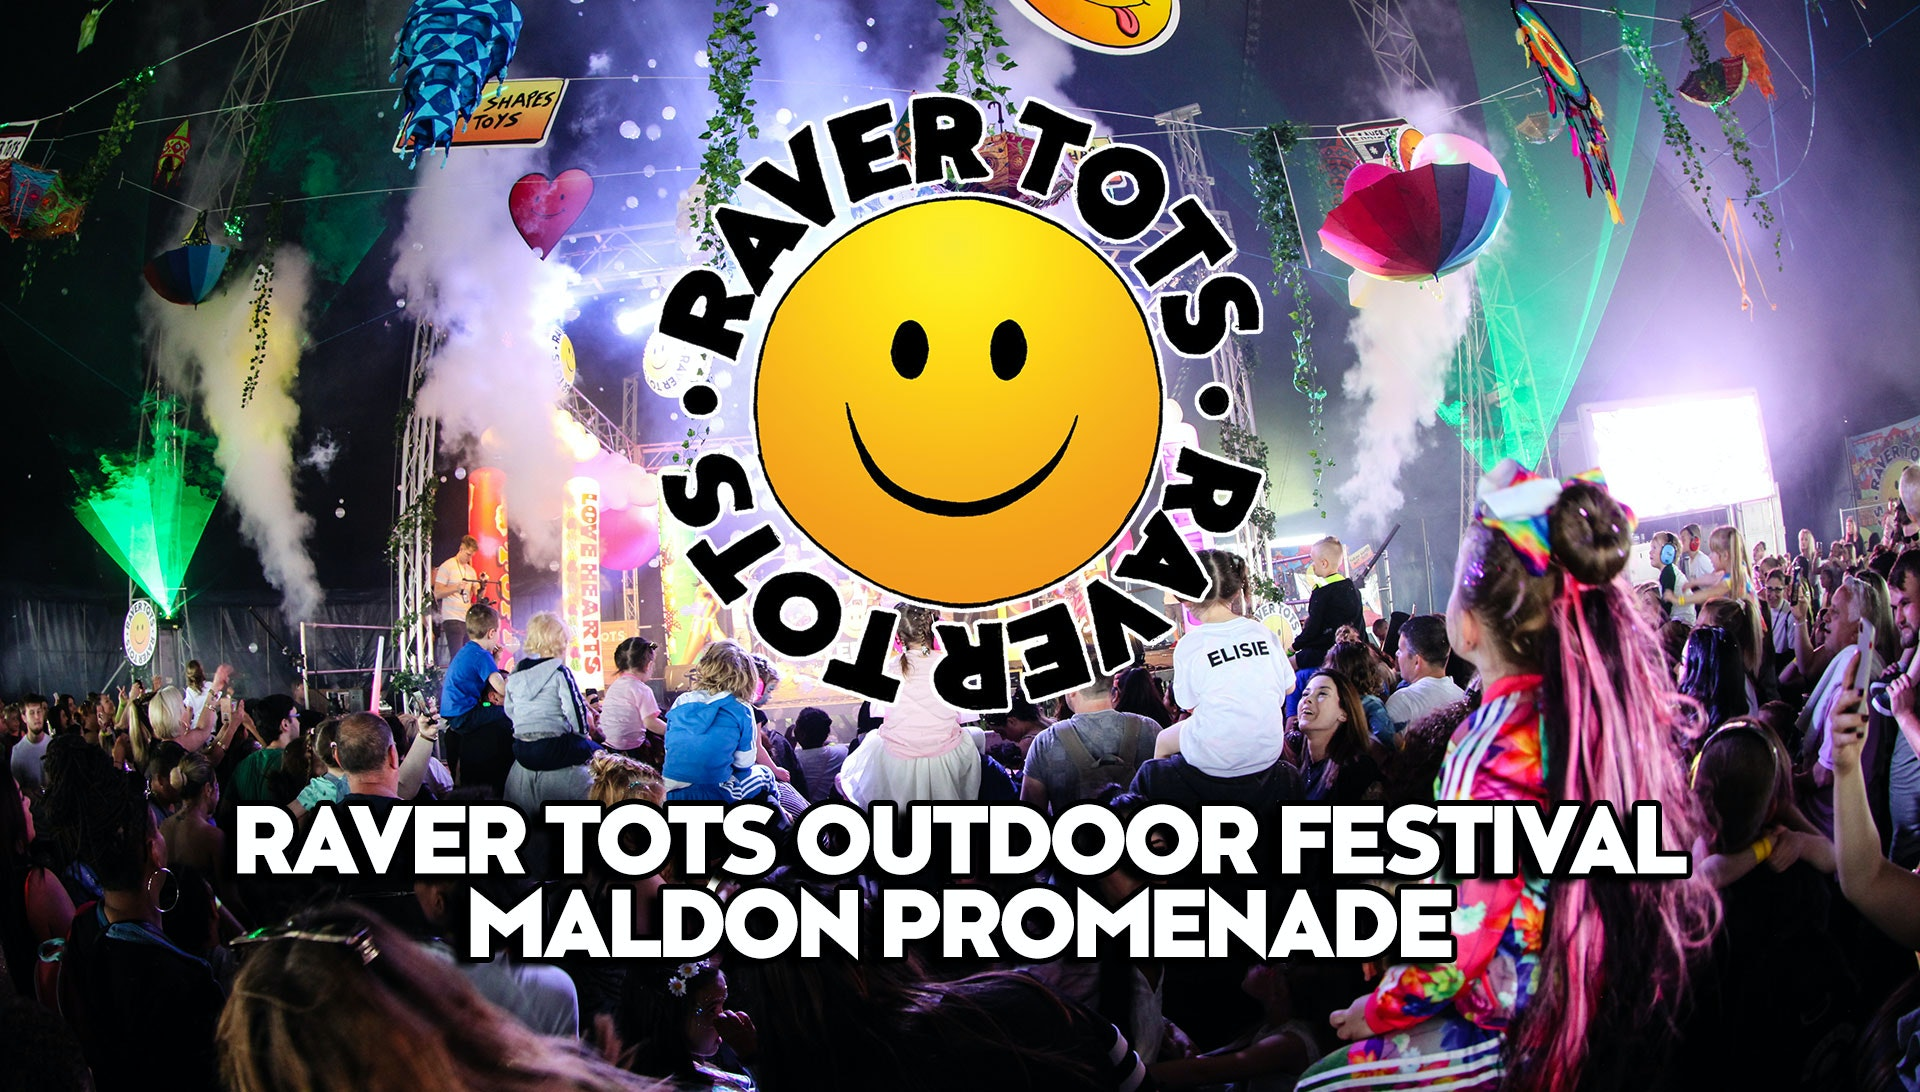 The Worlds Biggest Ever Raver Tots Outdoor Festival – Maldon Promenade